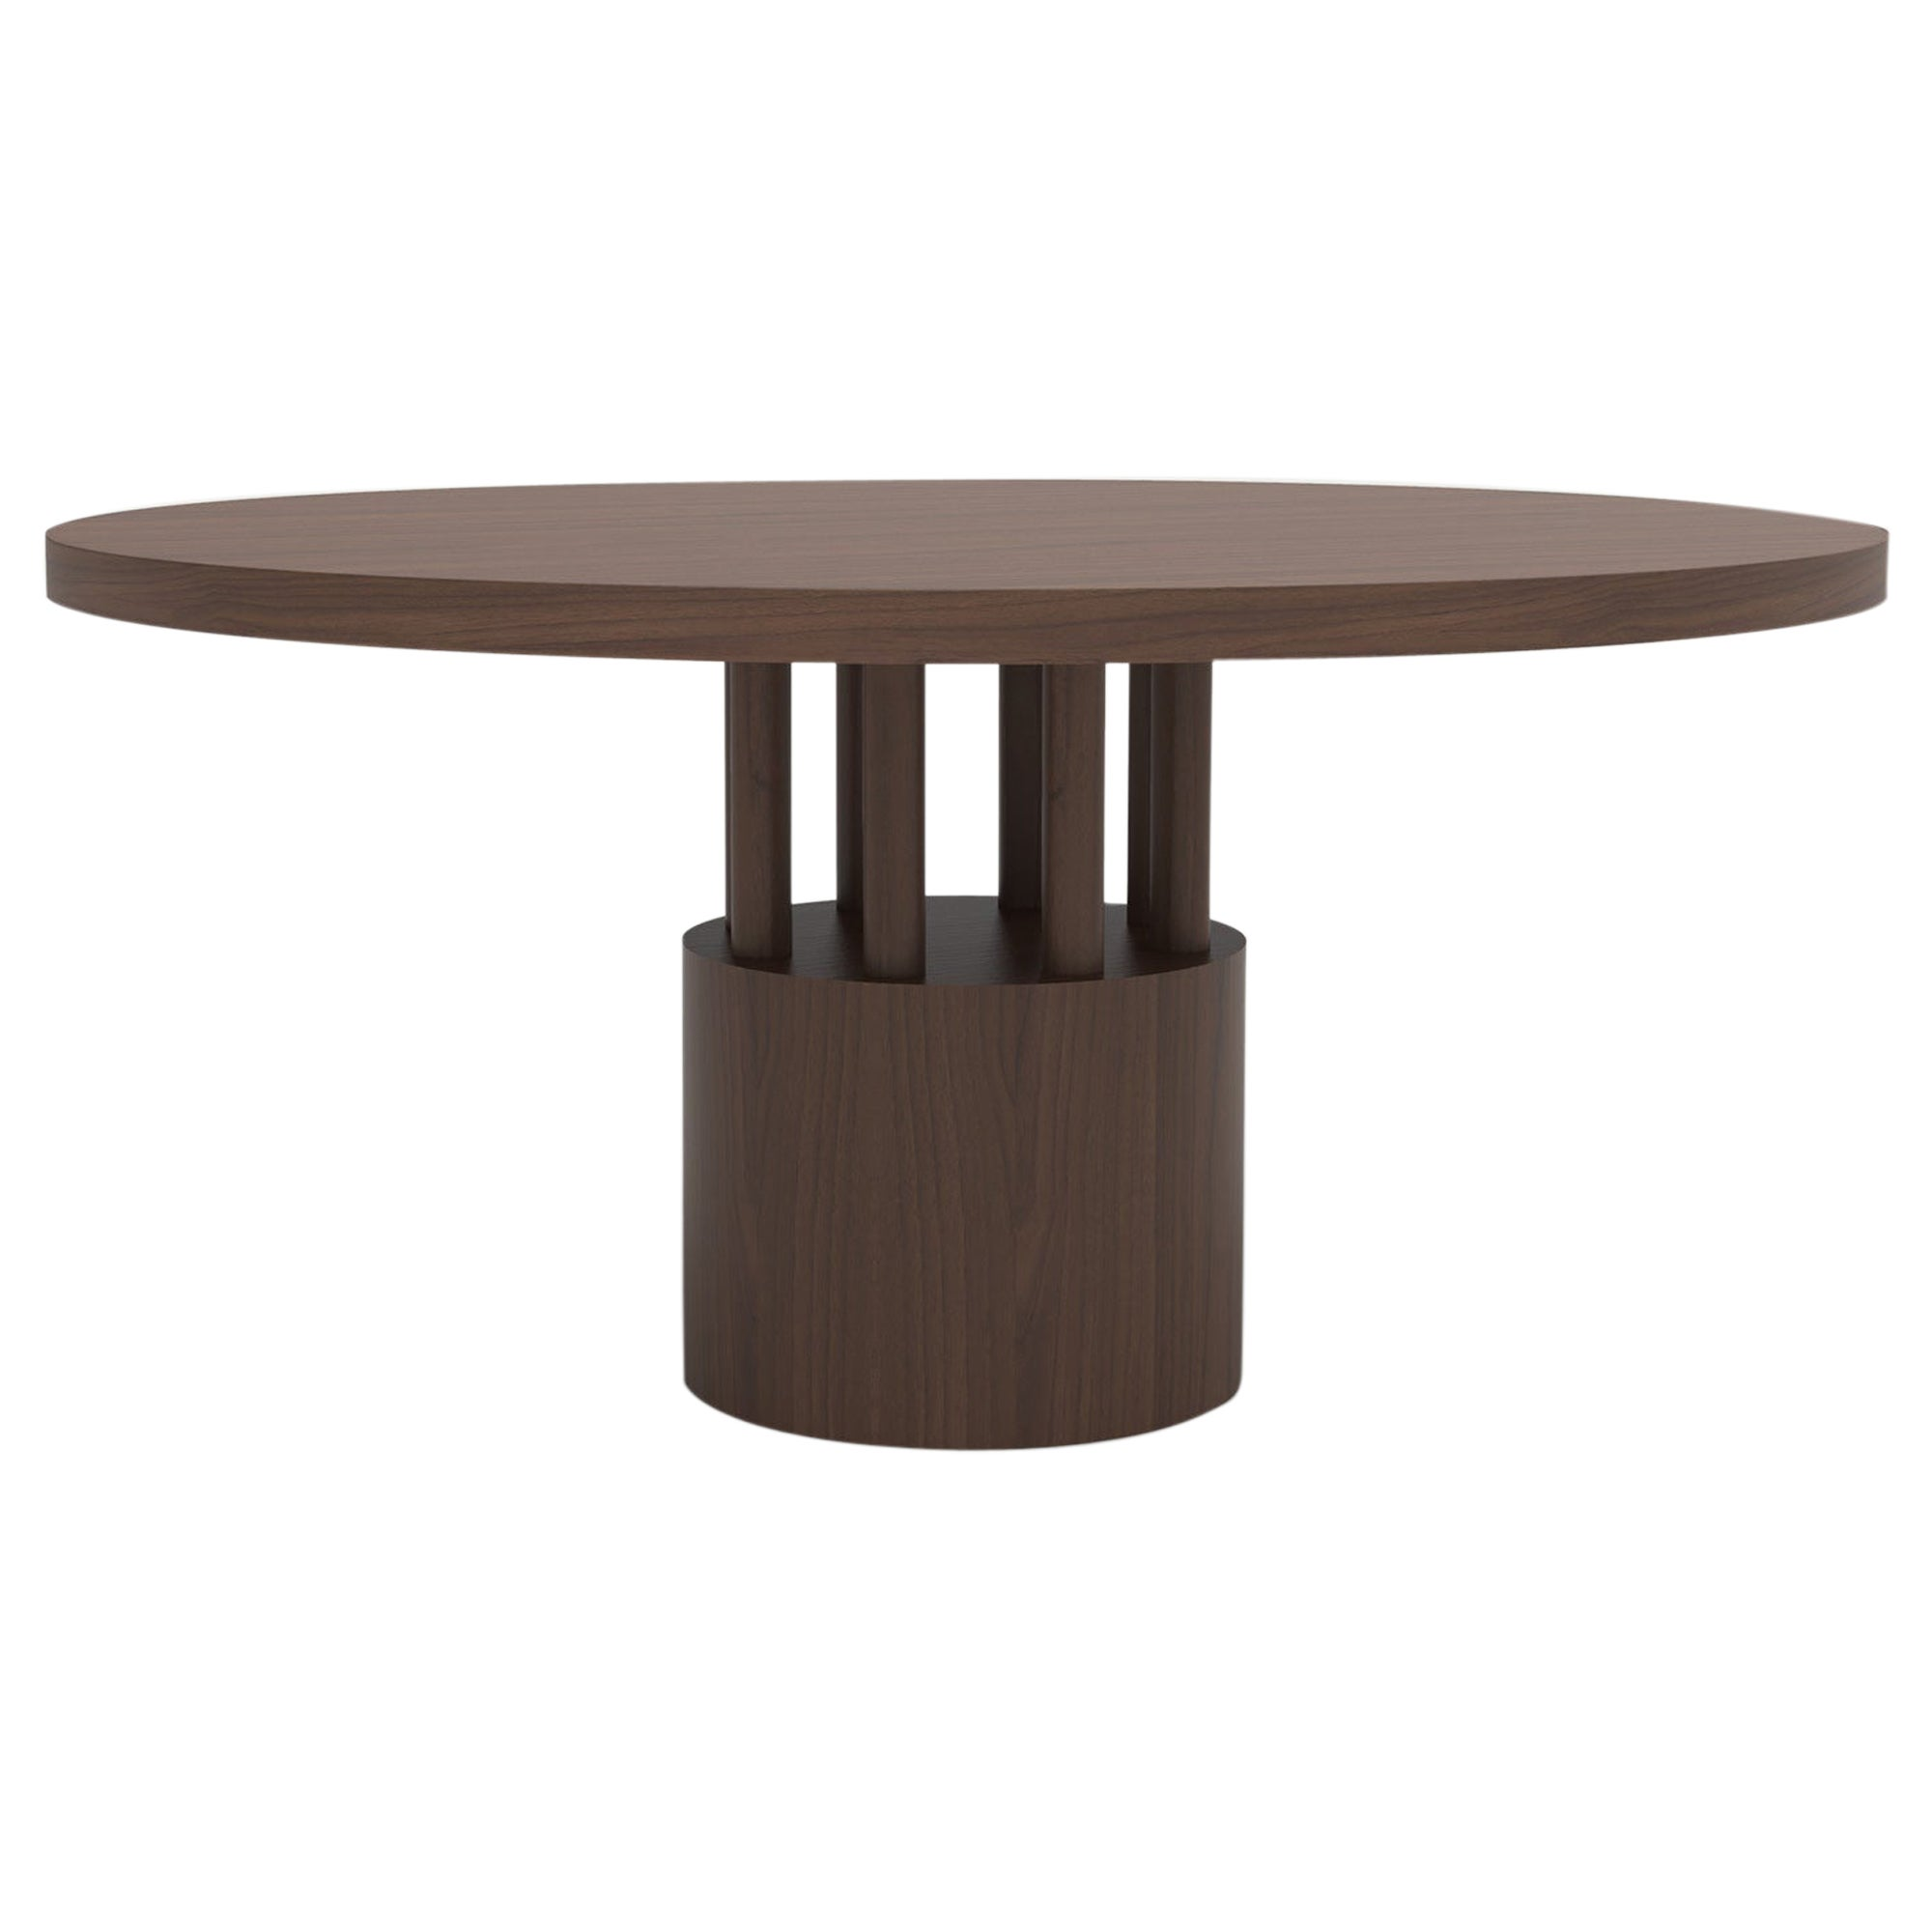 Walnut Wood Dining Table with Round Wood Base and Posts